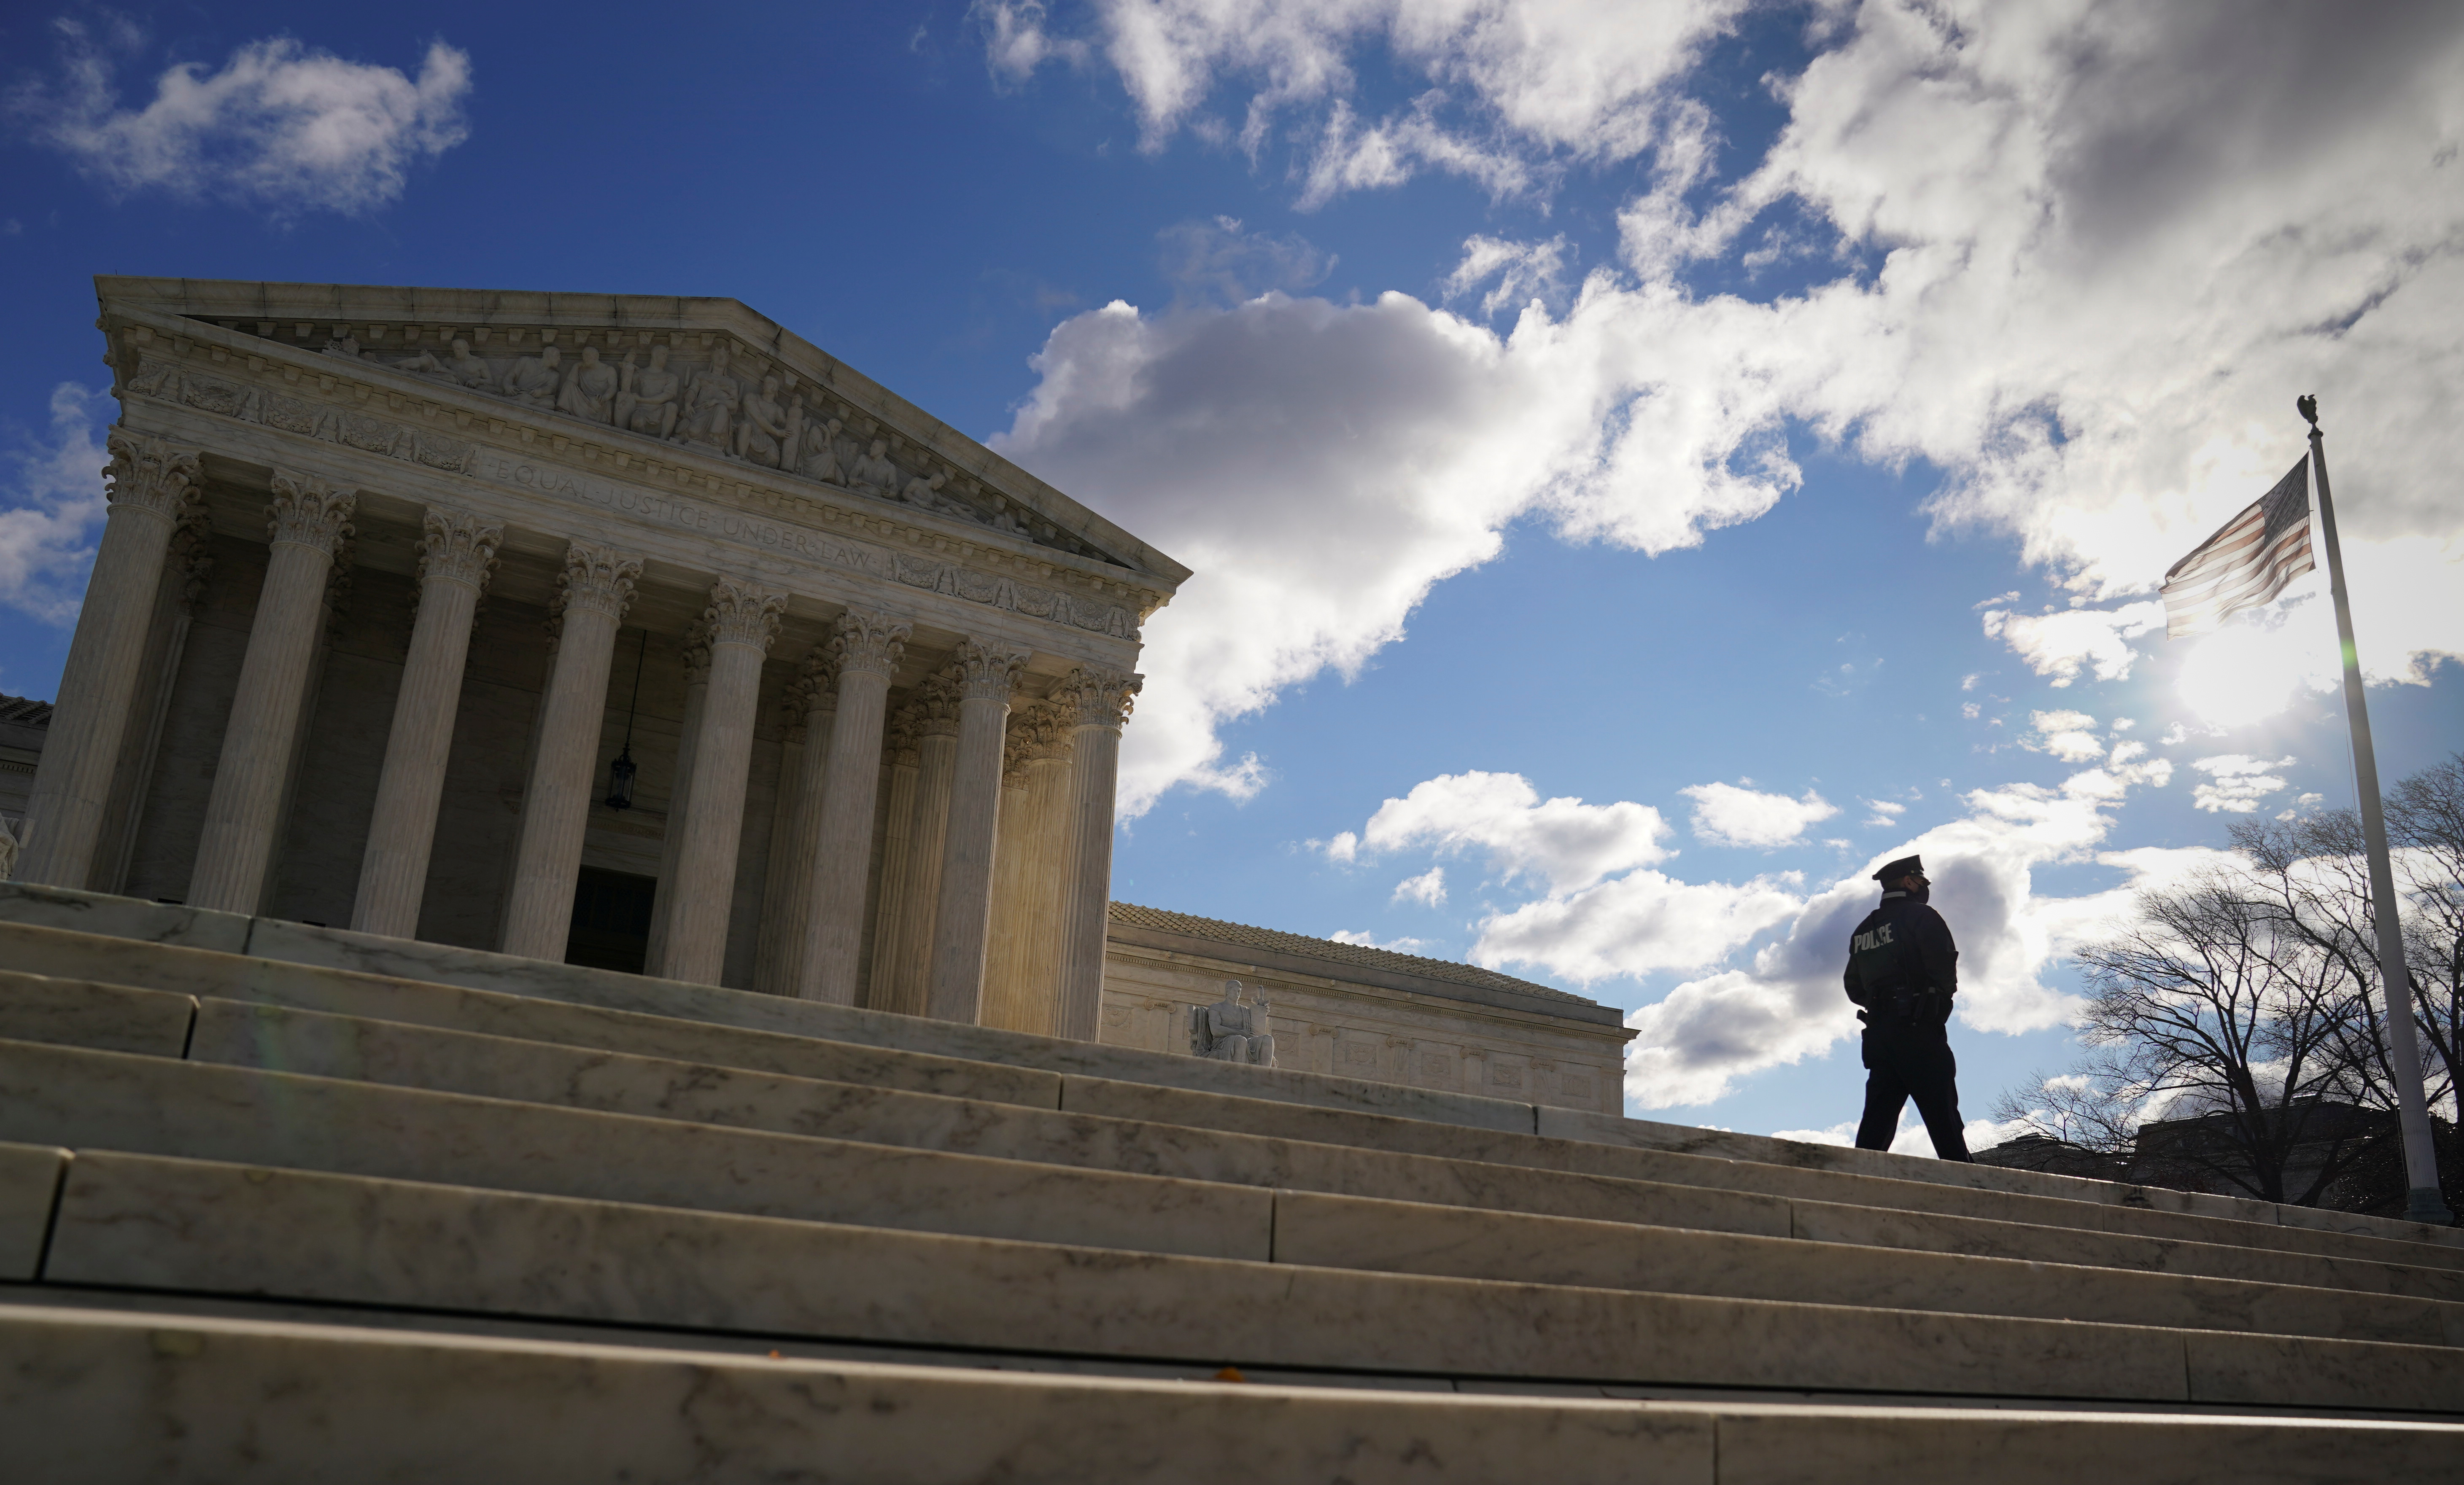 A police officer patrols the front of the U.S. Supreme Court in Washington, U.S., December 22, 2020. REUTERS/Kevin Lamarque